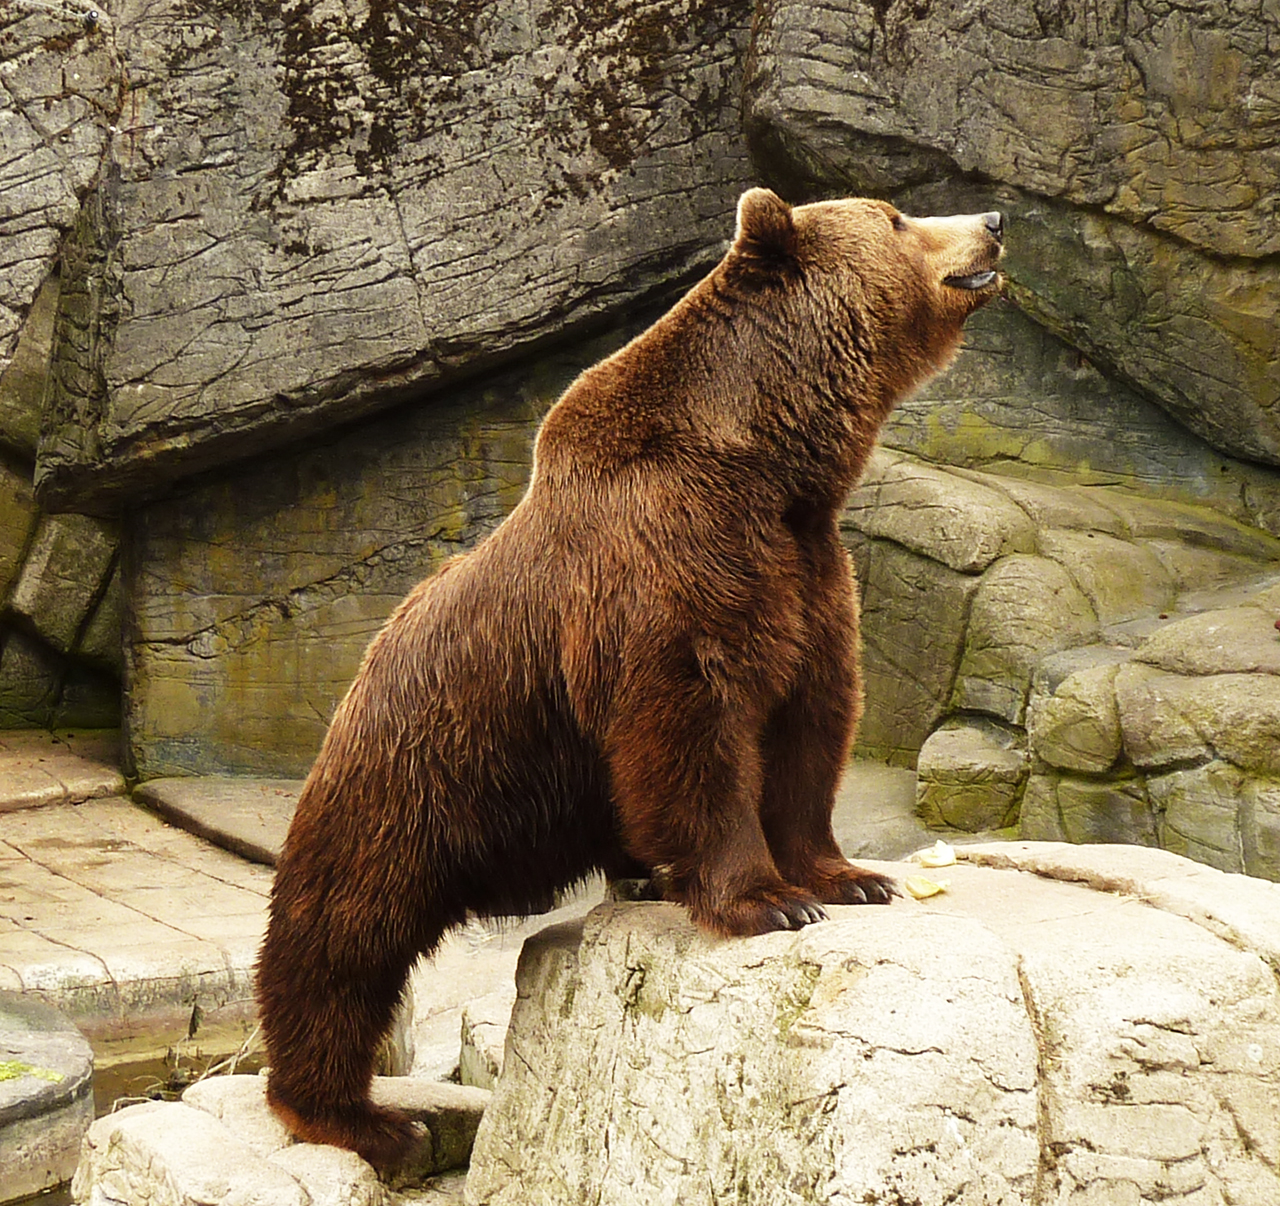 Brown bear in zoo with dinner